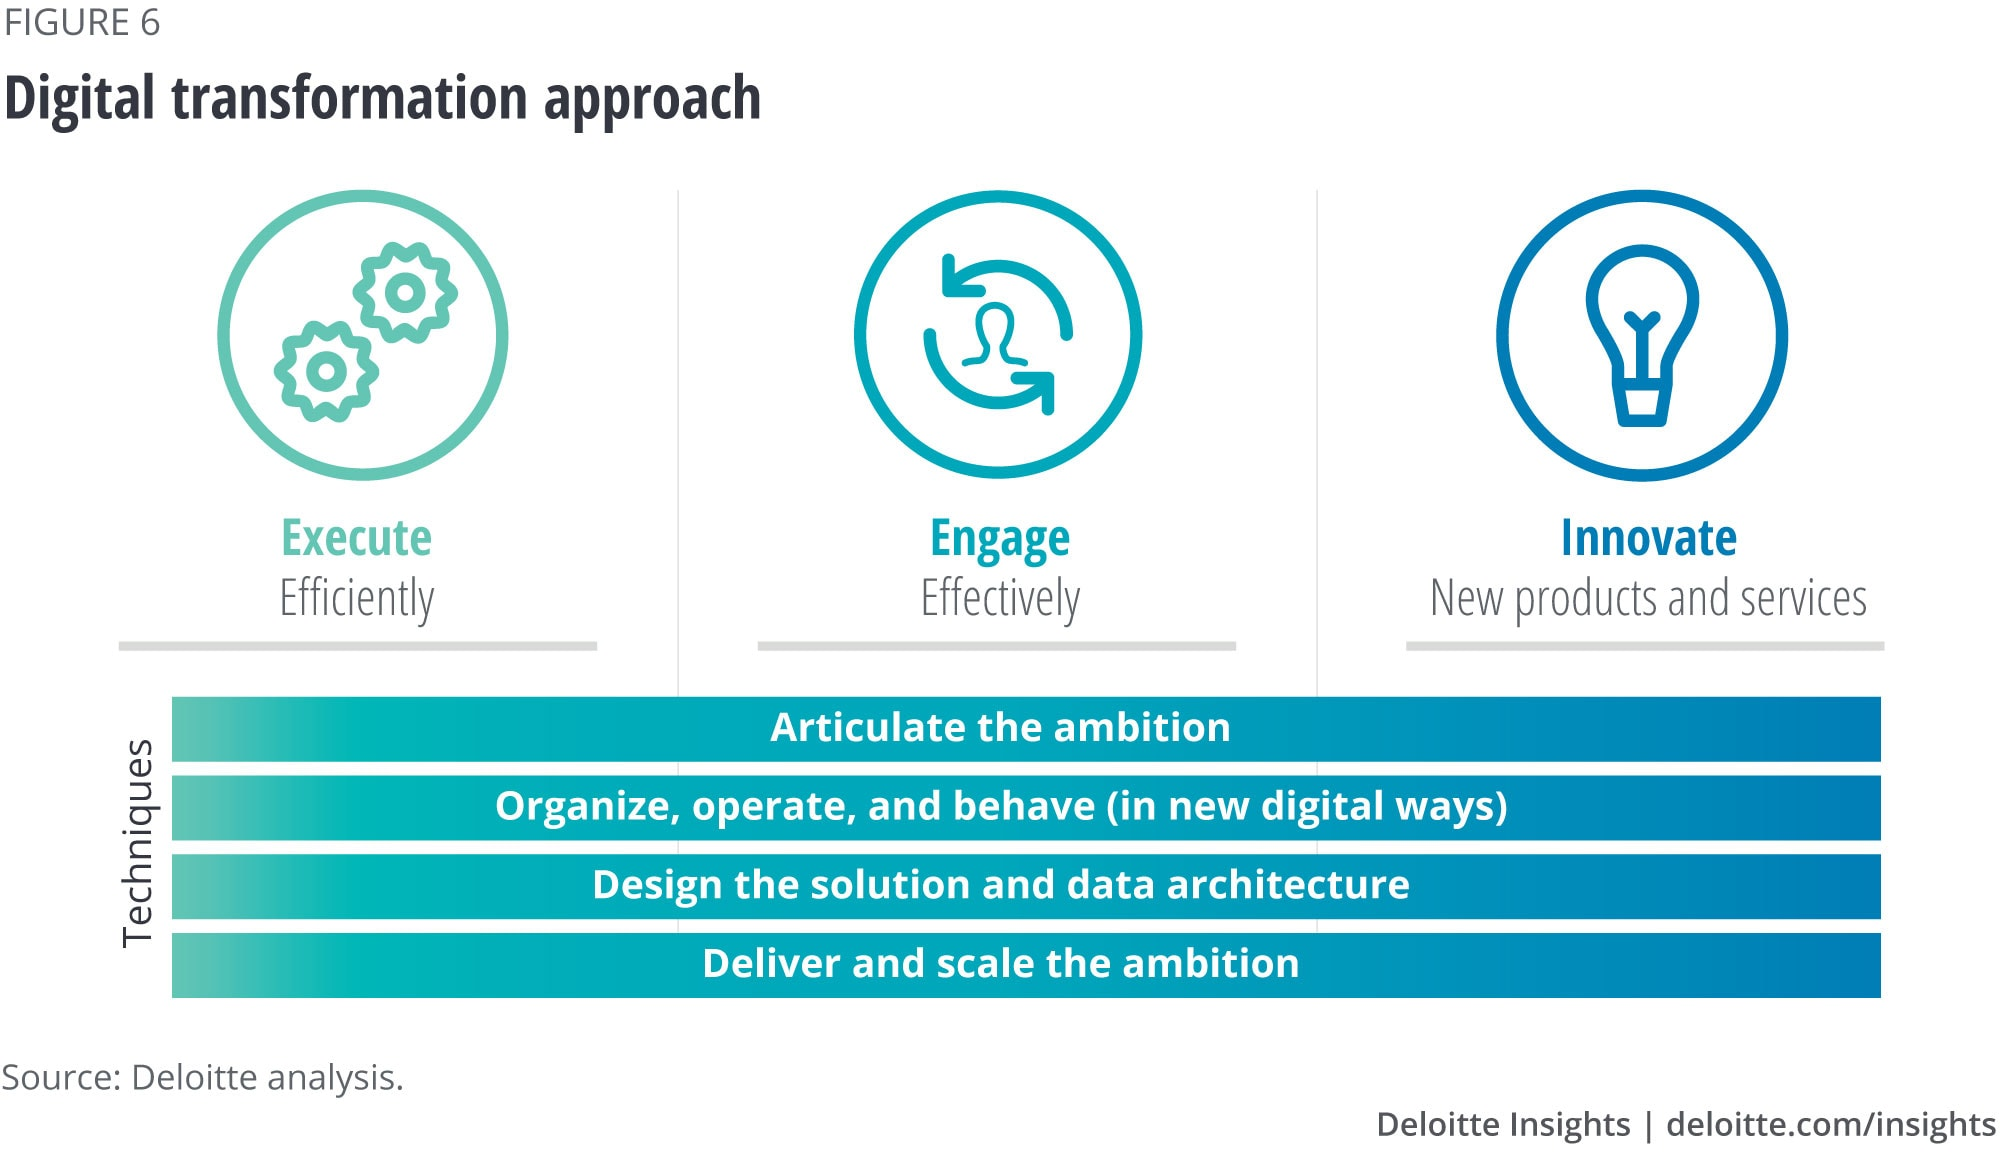 Digital transformation approach